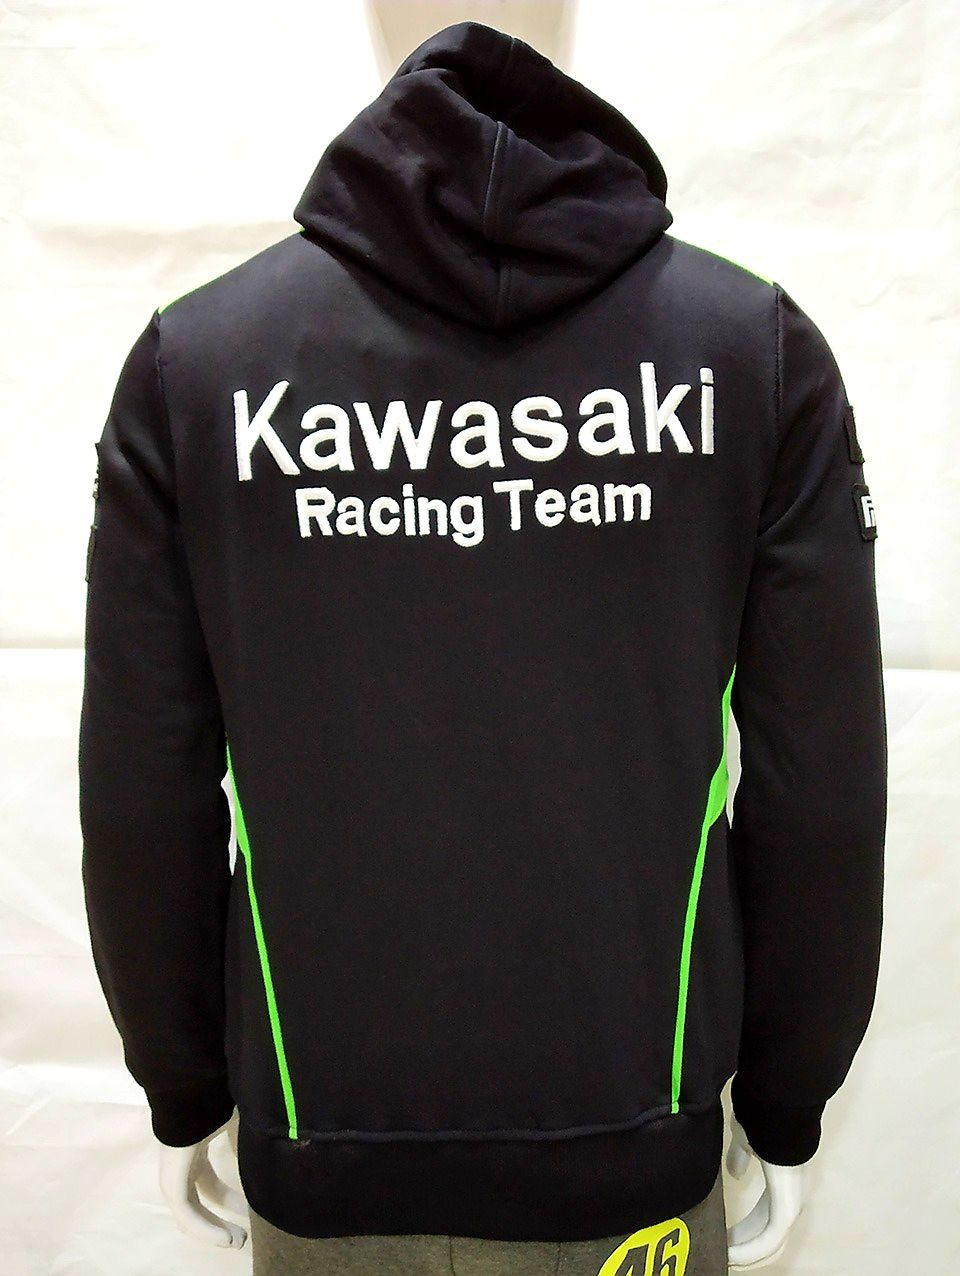 Kawasaki Racing Team Hoodies